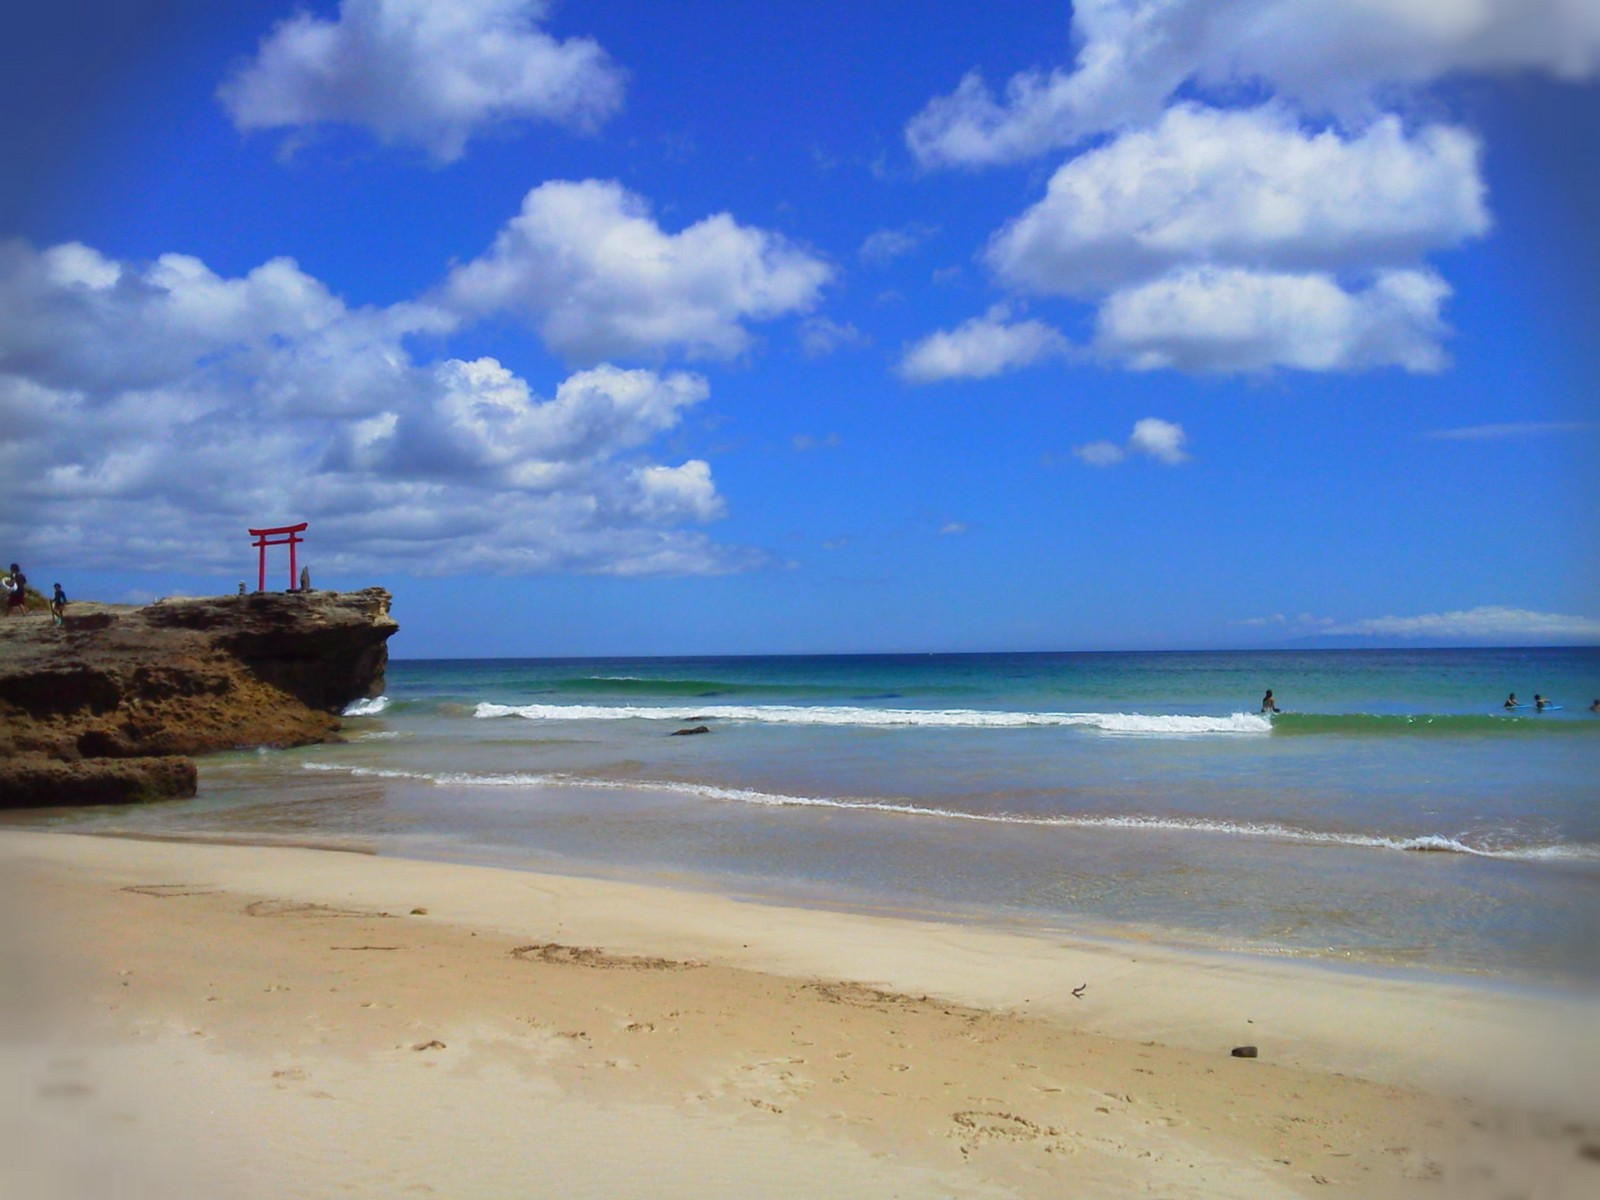 The beautiful Shirahama Beach with the red torii gate and the blue sky